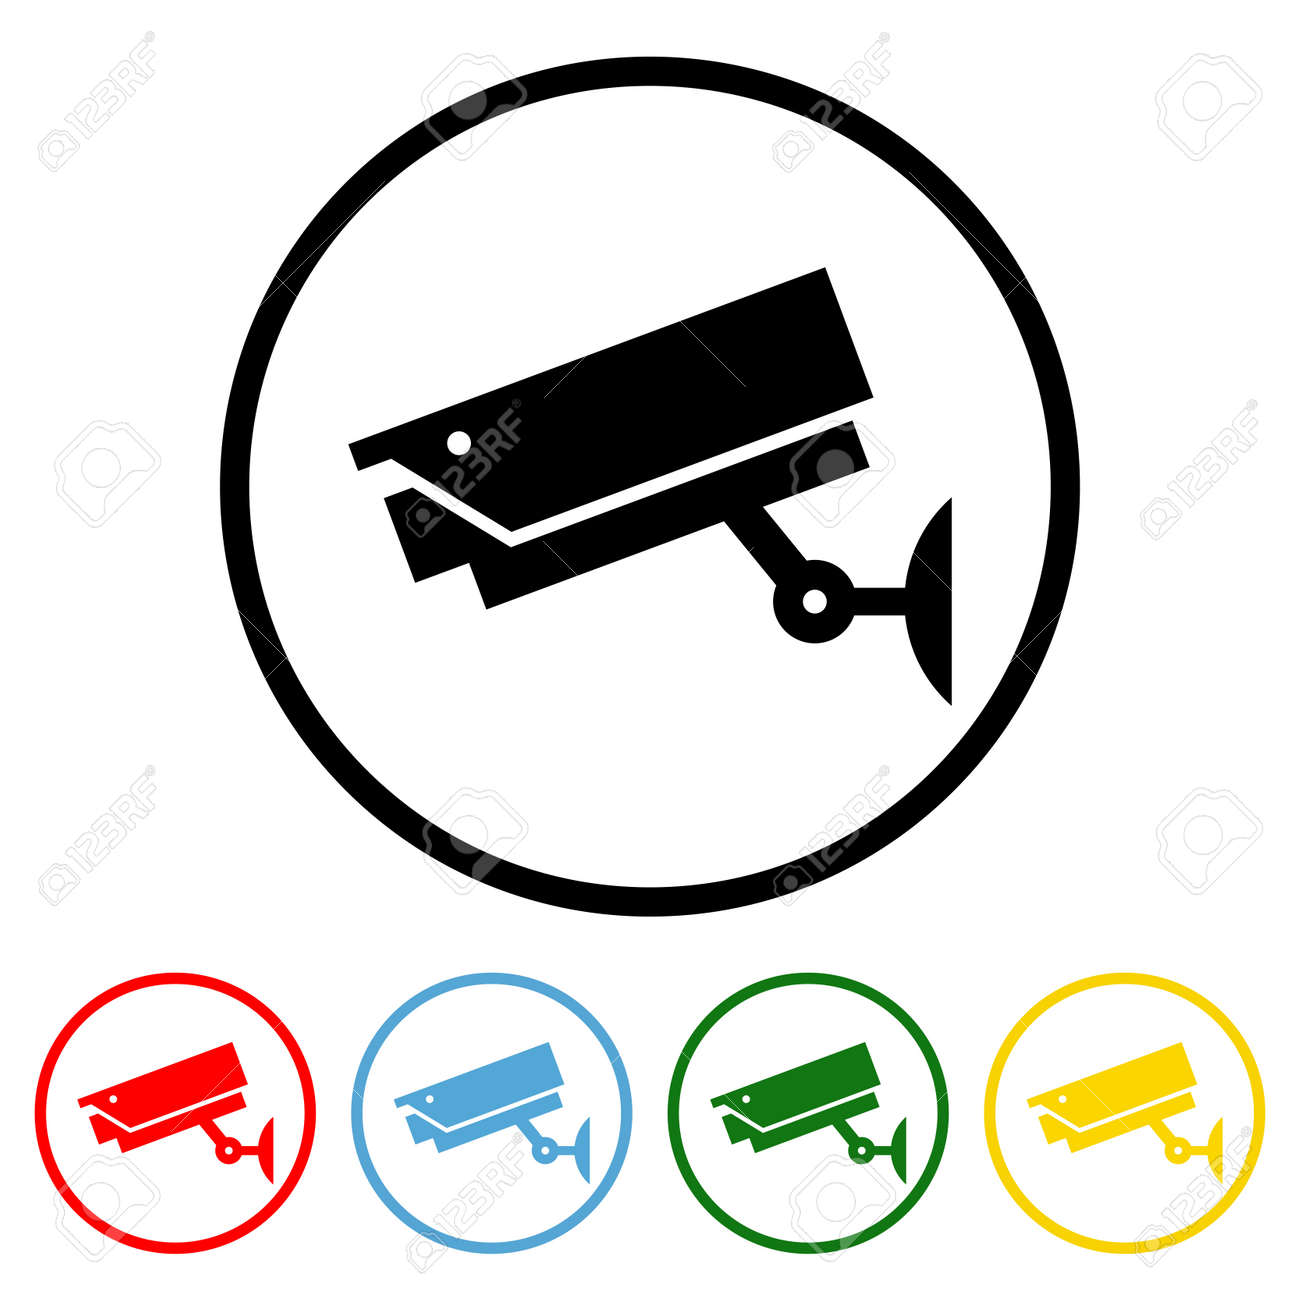 CCTV icon vector illustration design element with four color variations. Vector illustration. All in a single layer. Elements for design. - 172142975